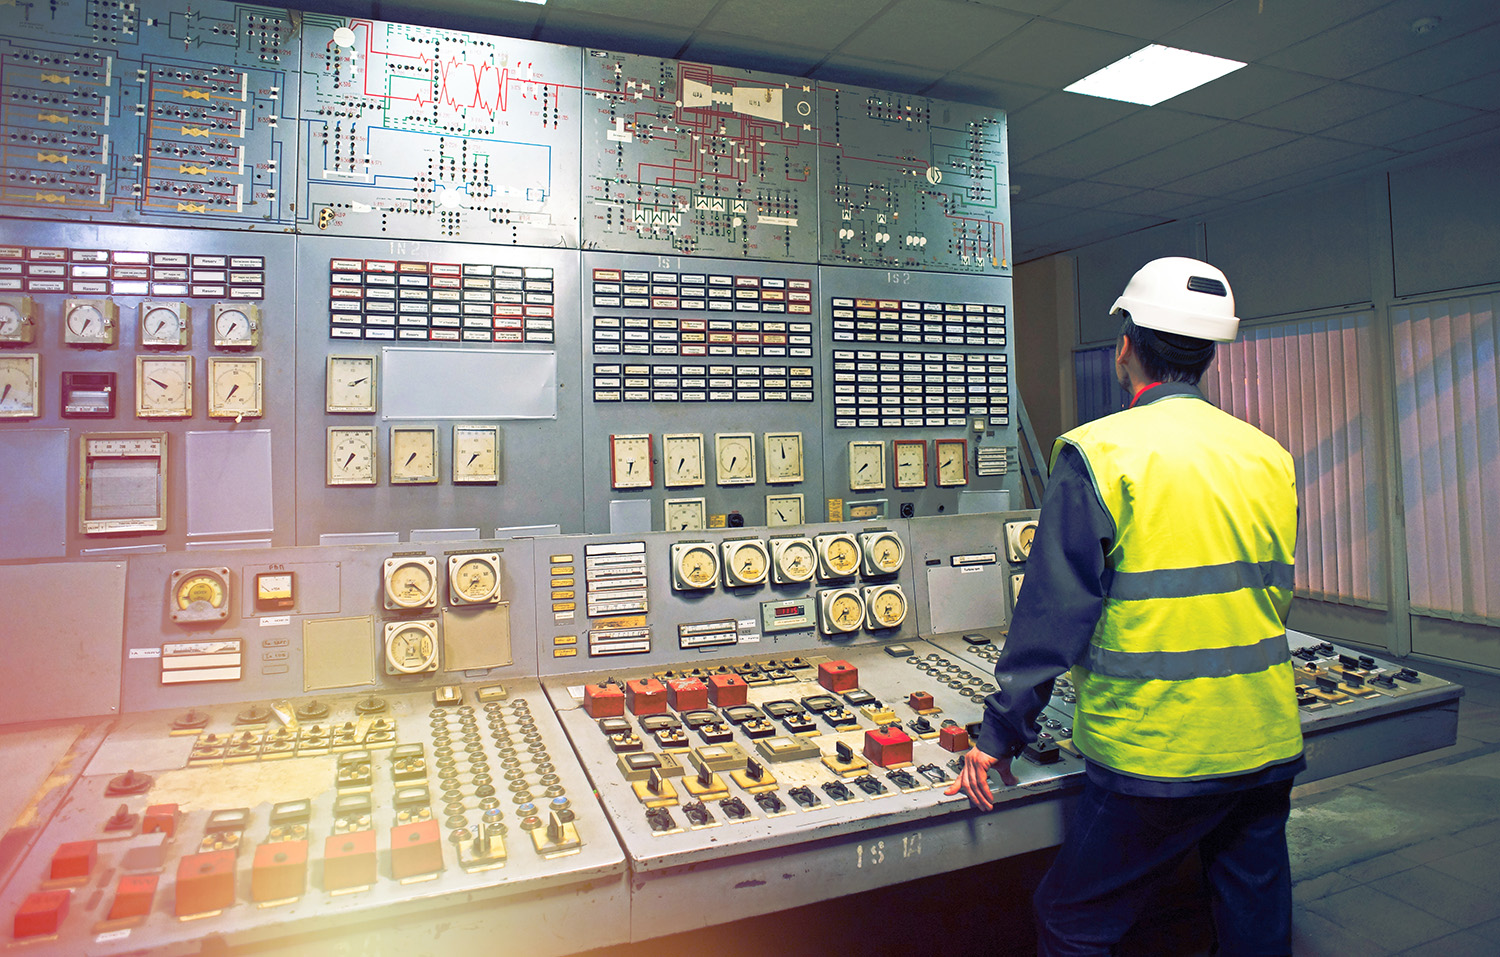 how to do a Secure transfer of SCADA information